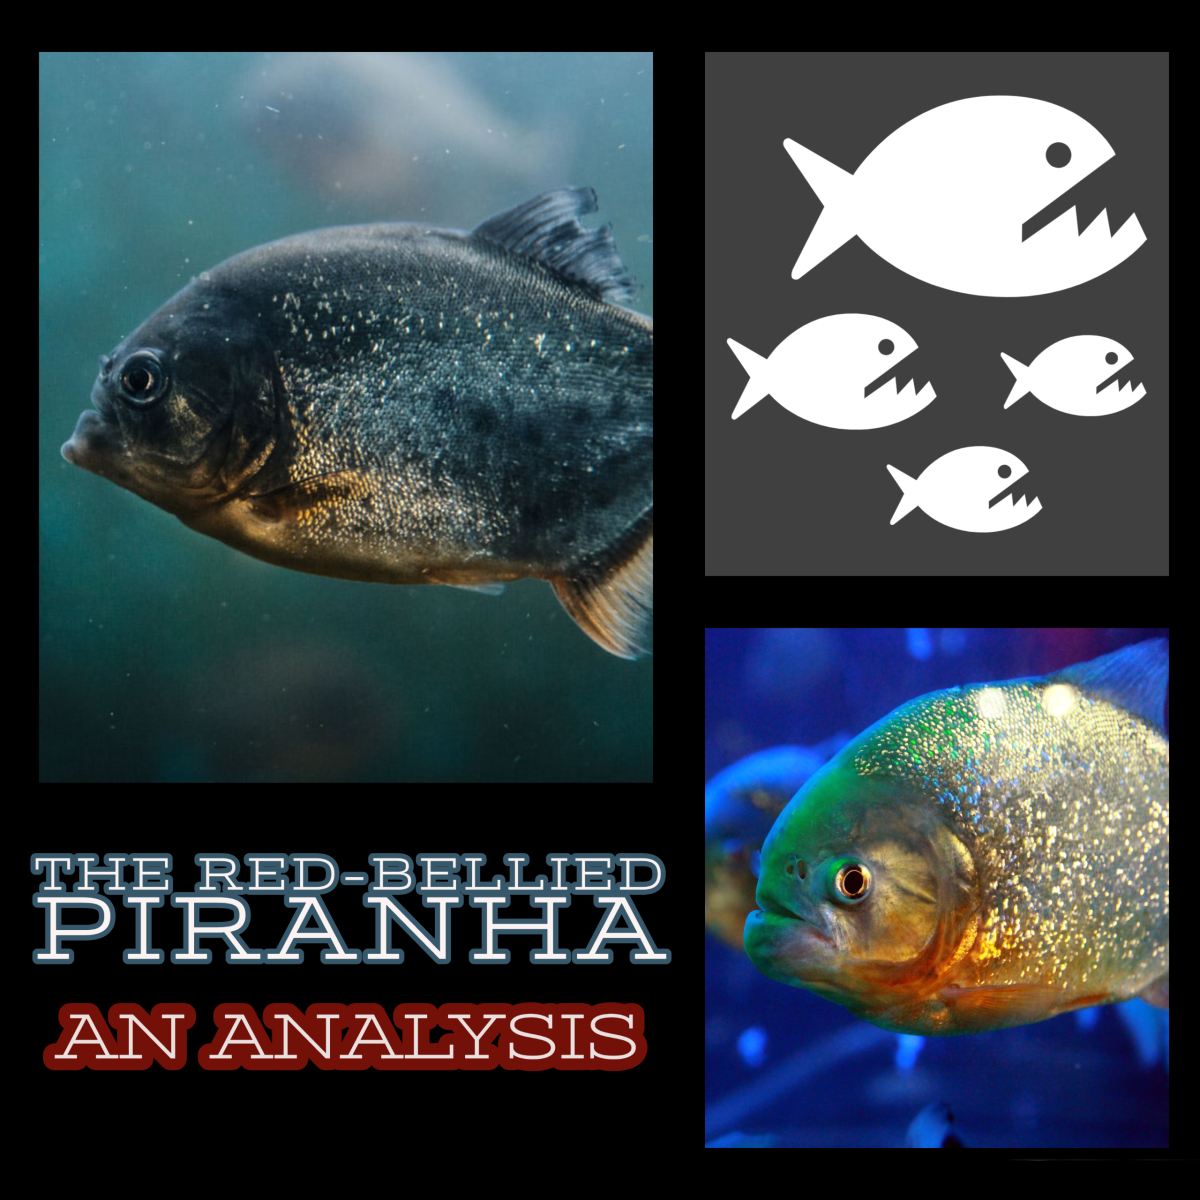 The Red-Bellied Piranha.